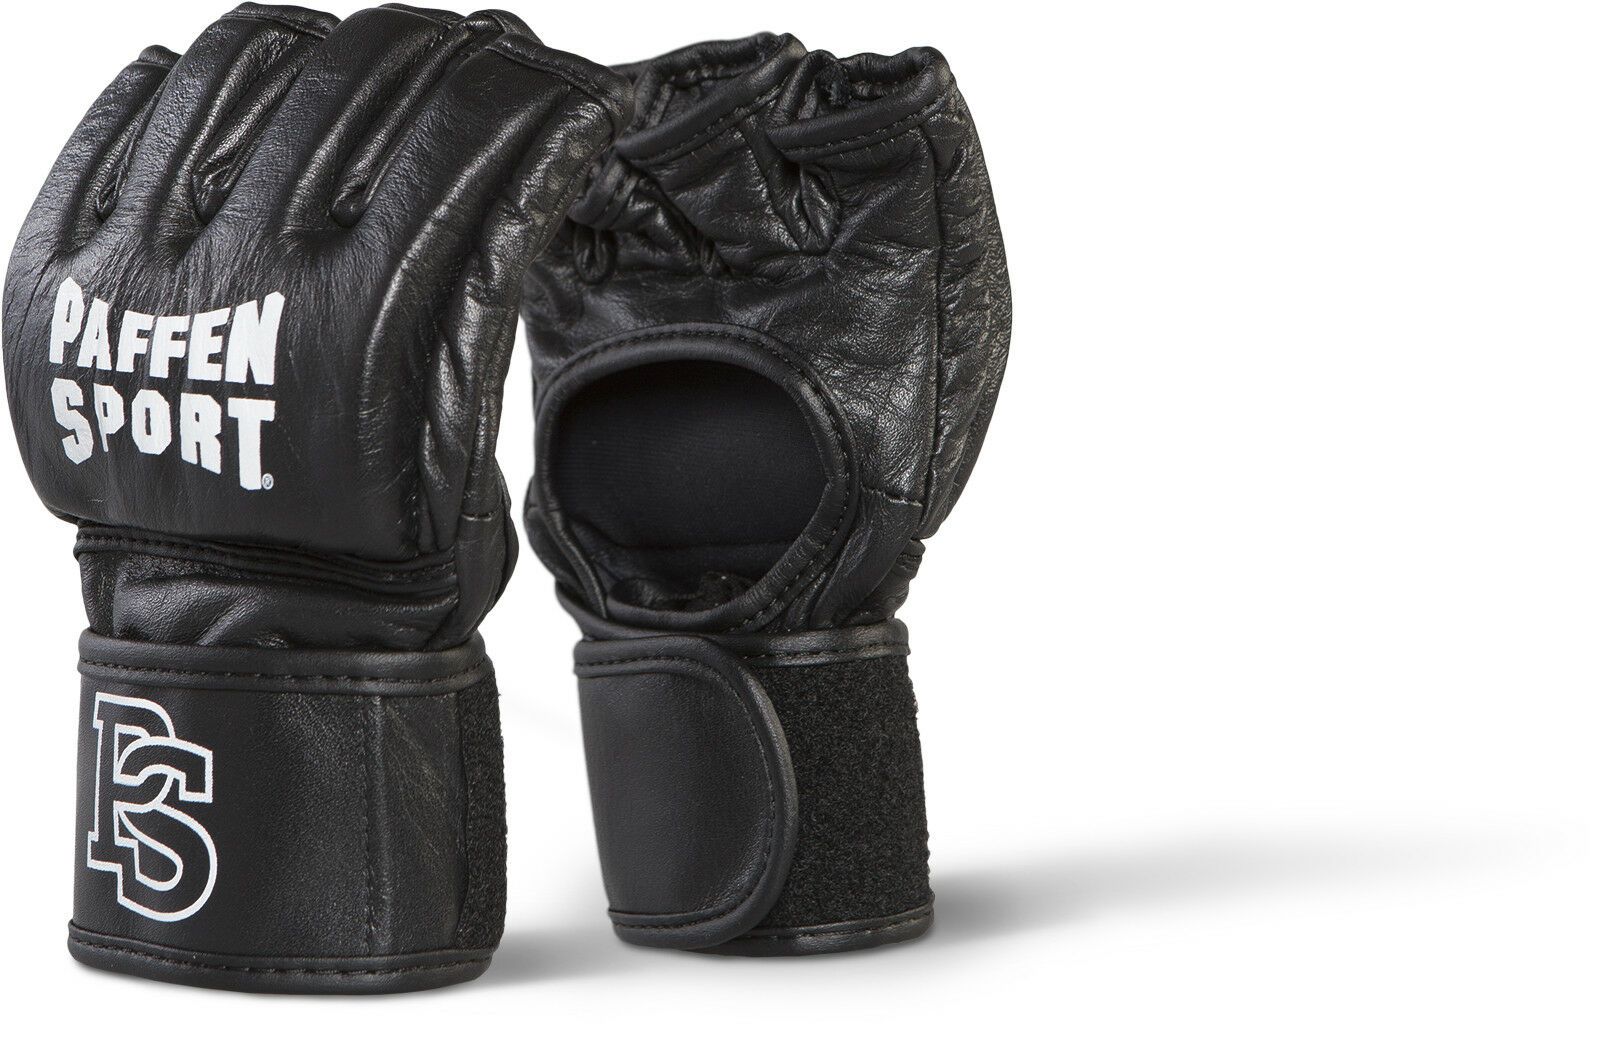 Contact Leder Freefight Handschuhe, Paffen Sport. MMA, Freefight, Jiu Jitsu, WT